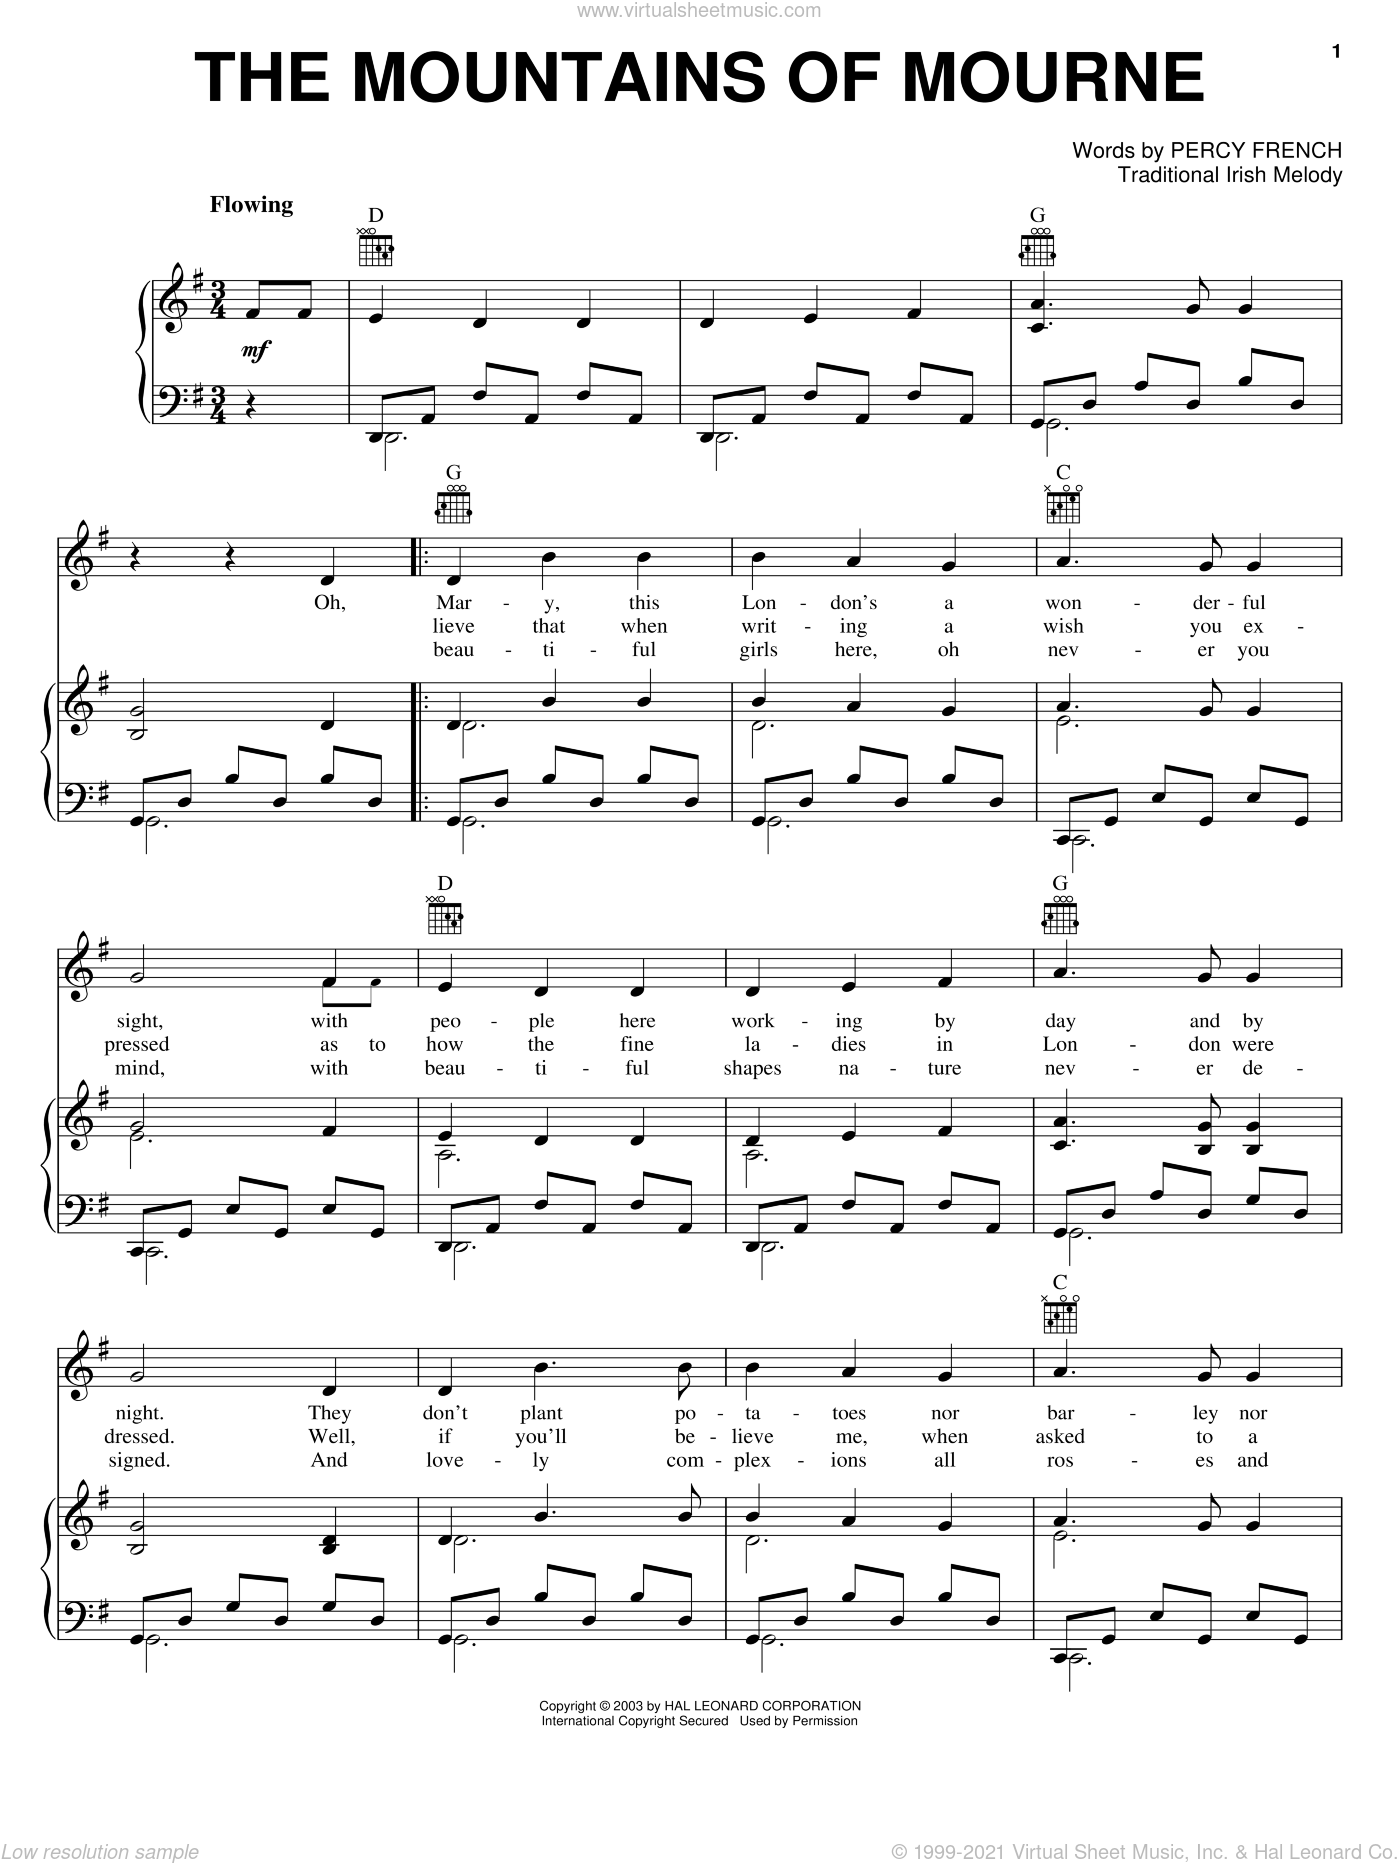 The Mountains Of Mourne sheet music for voice, piano or guitar by Percy French and Miscellaneous, intermediate skill level